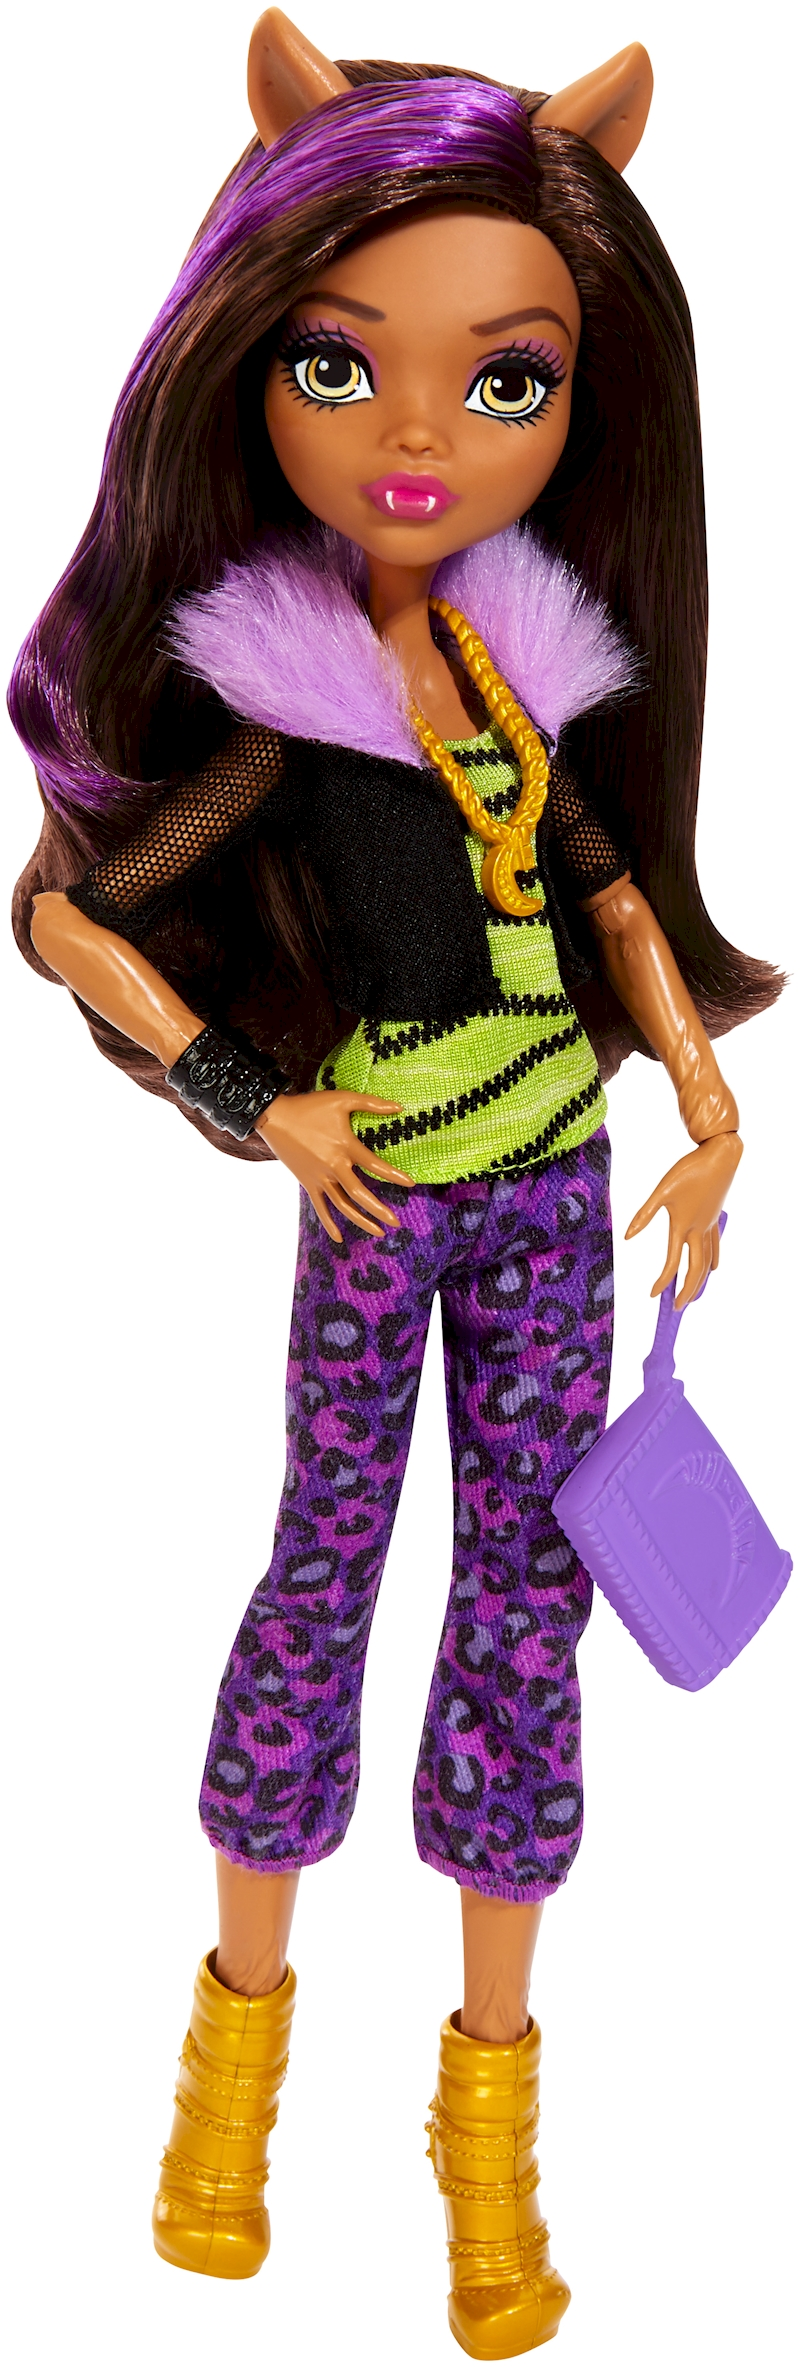 MONSTER HIGH CLAWDEEN WOLF DOLL  Shop Monster High Doll